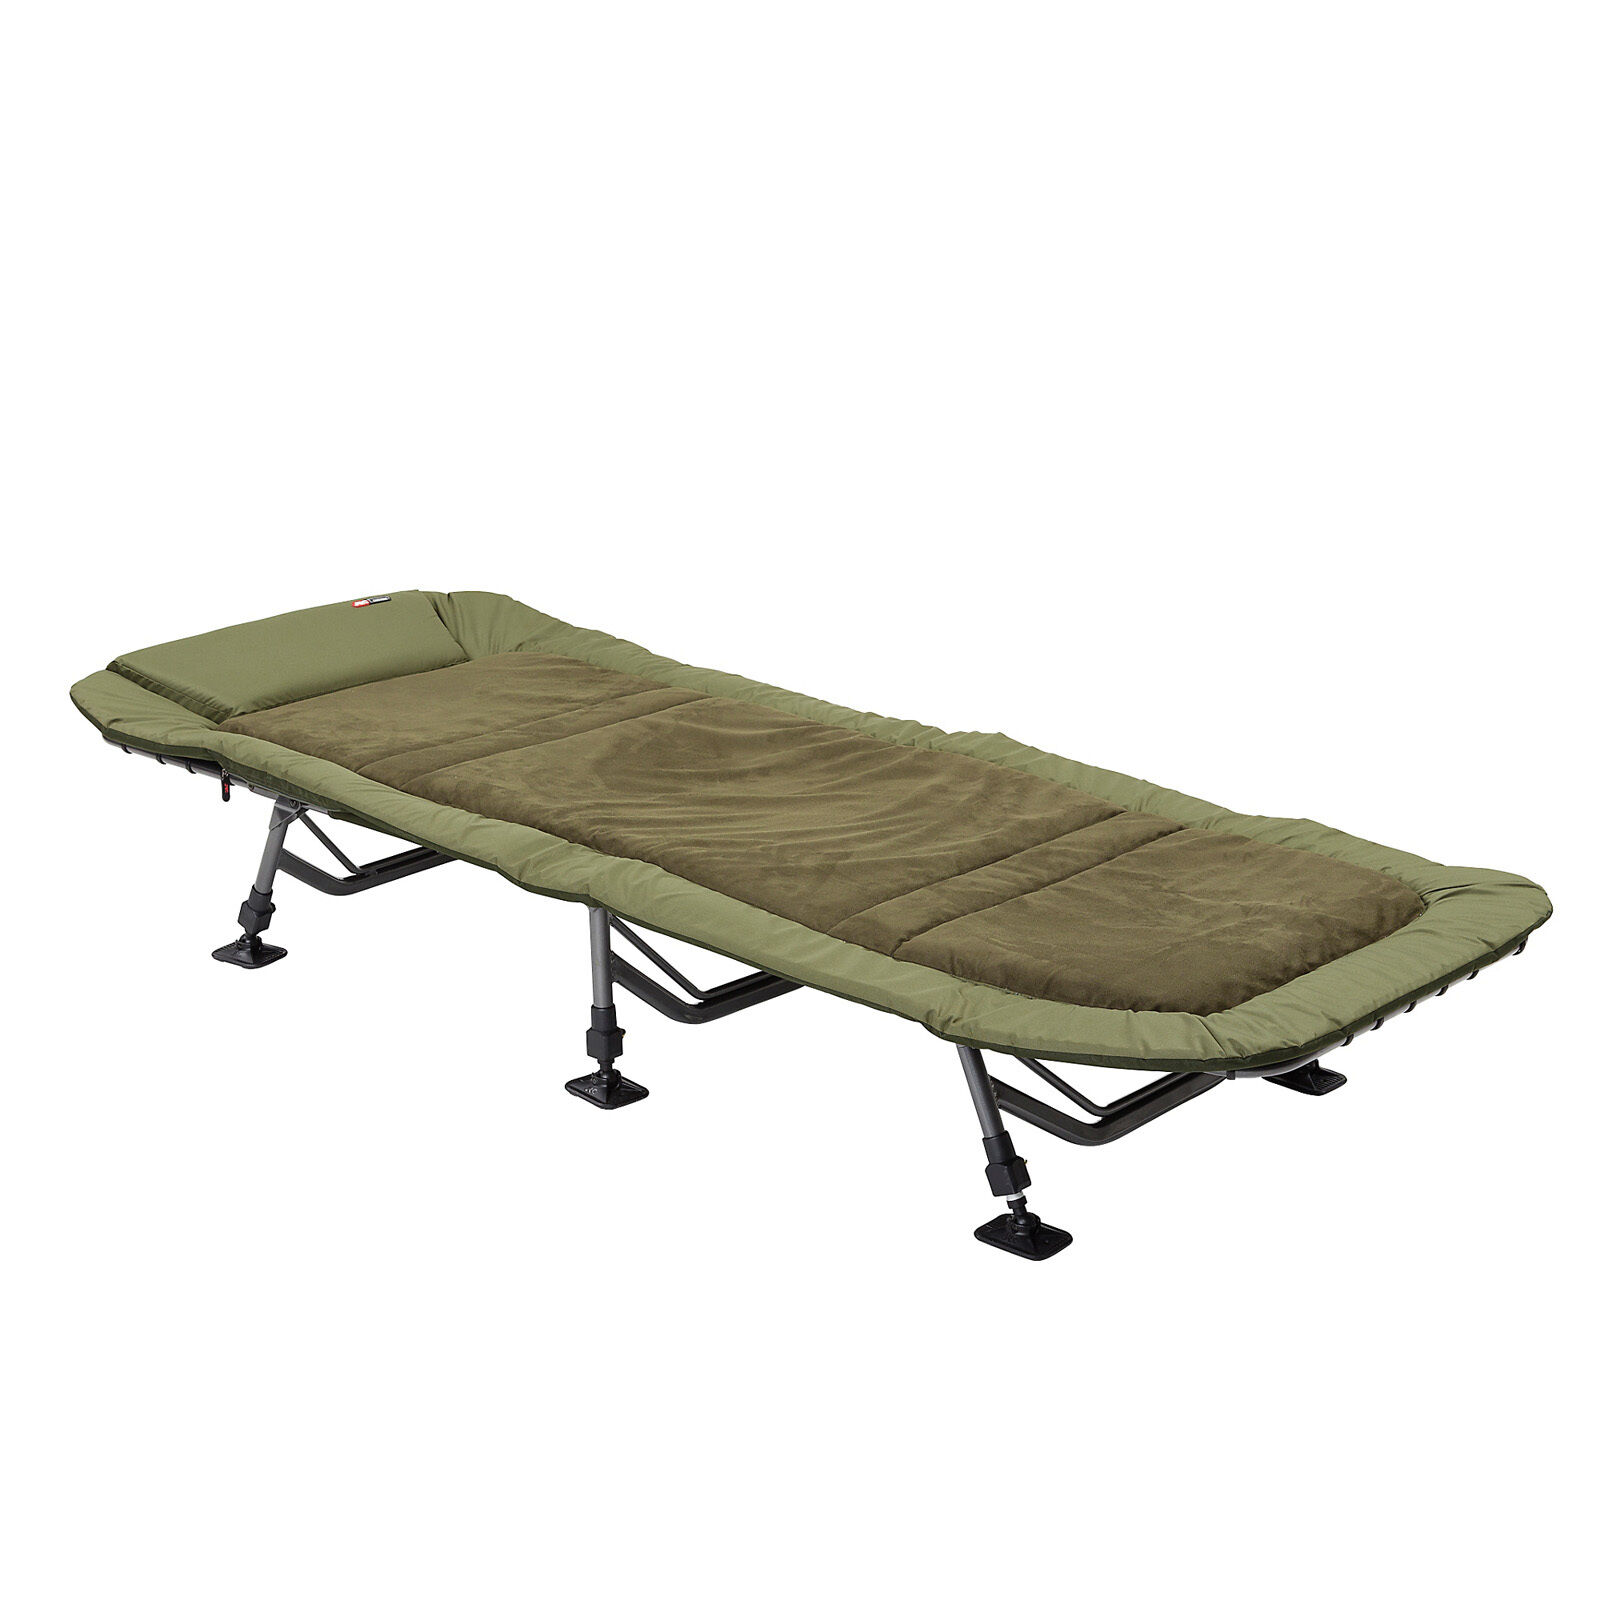 JRC Carp Fishing Cocoon 2G Super Levelbed - Foldable, Compact, Padded, Carrybag